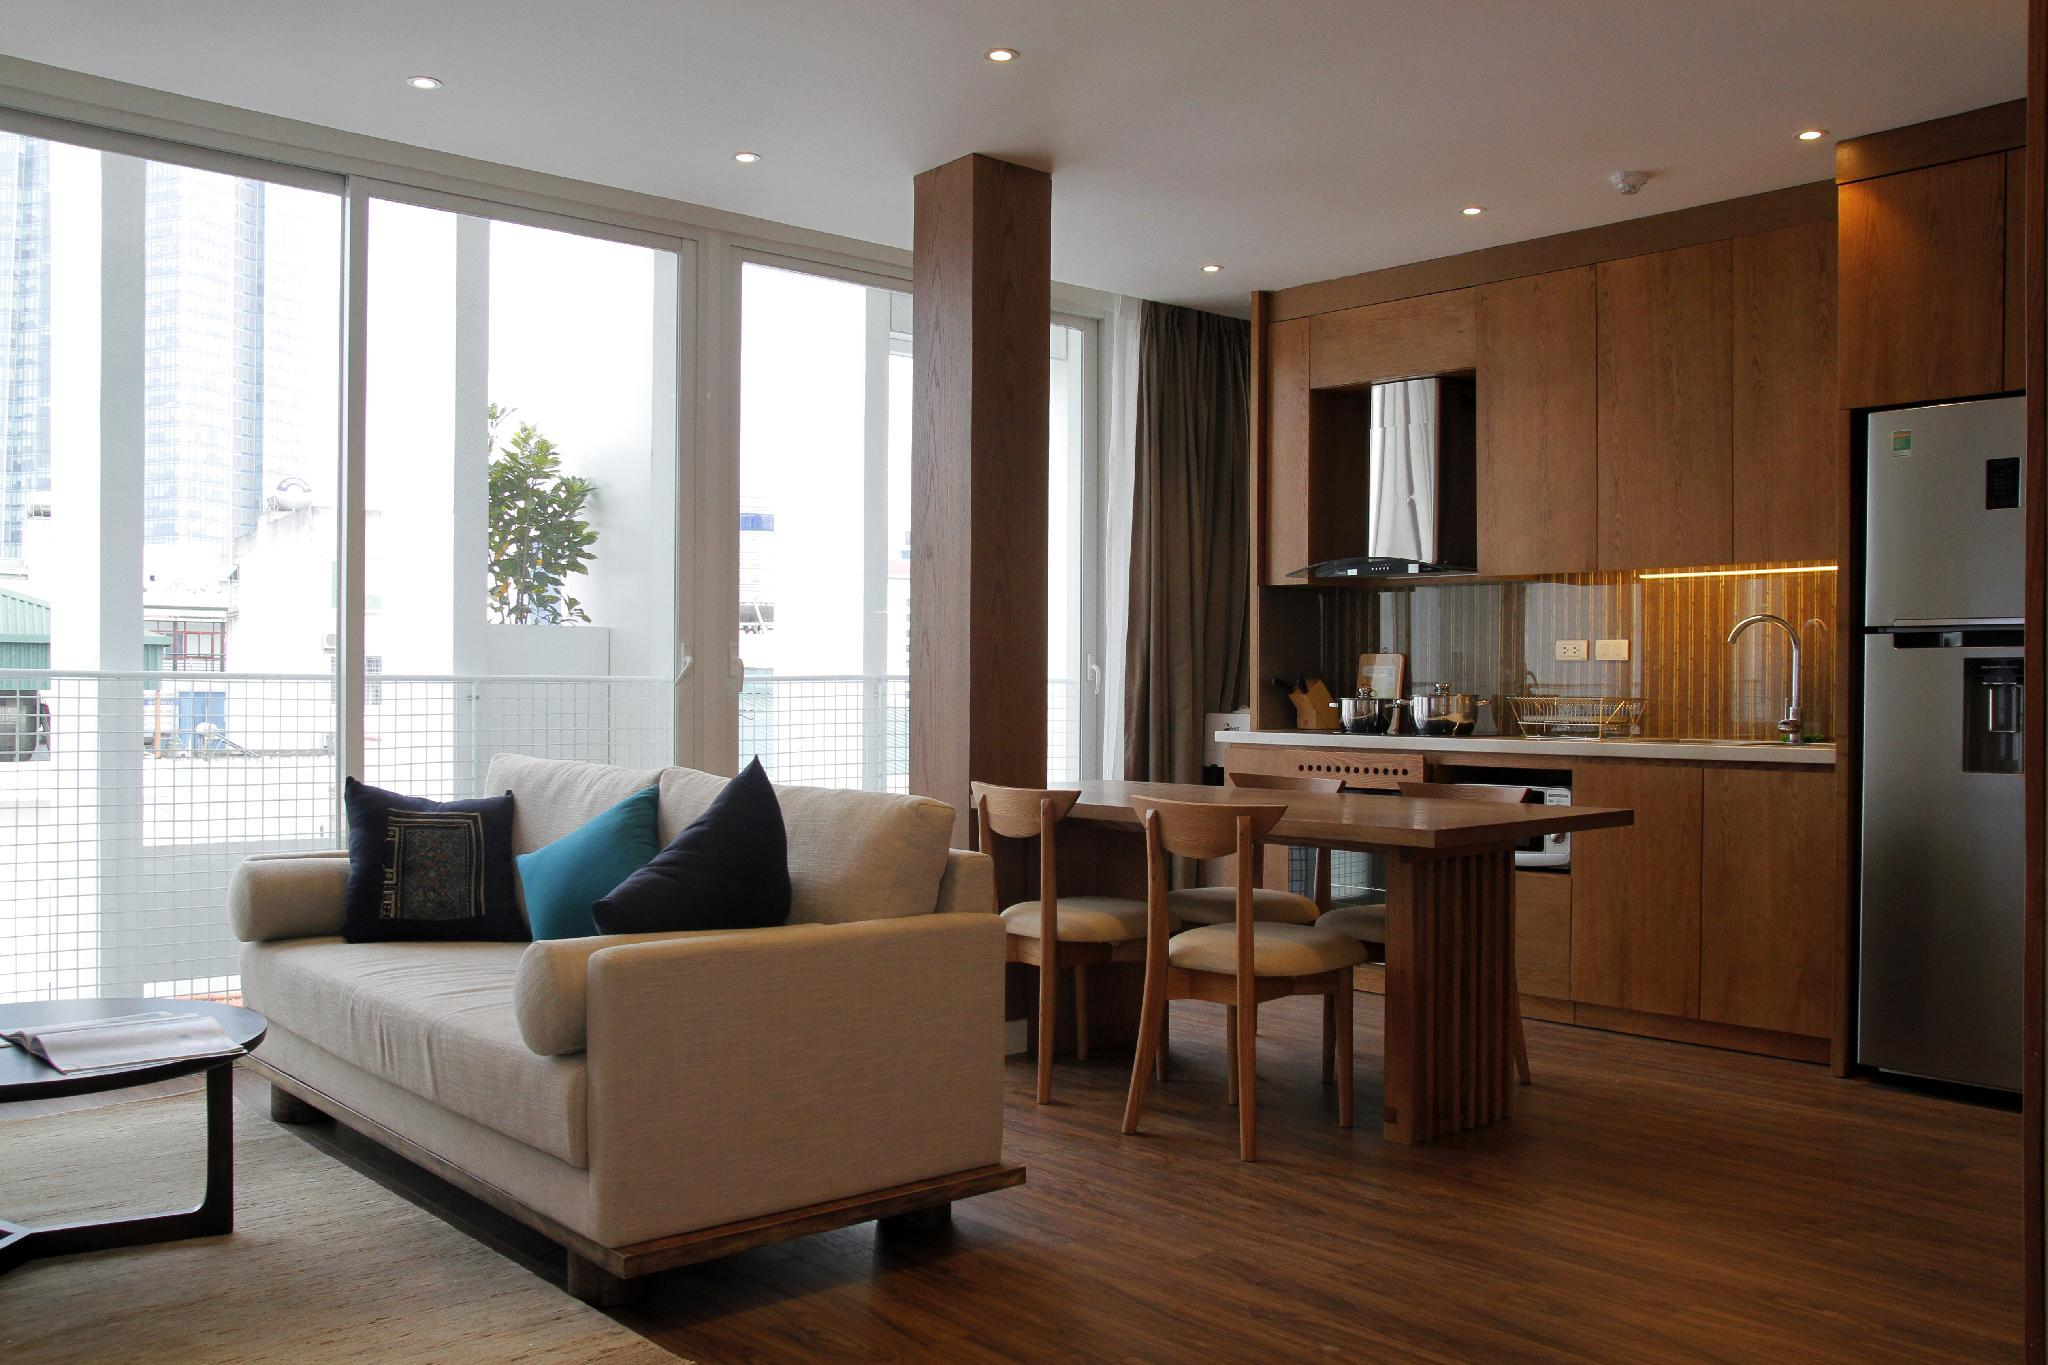 2 Bedrooms Modern And Convenient Dao Tan Street